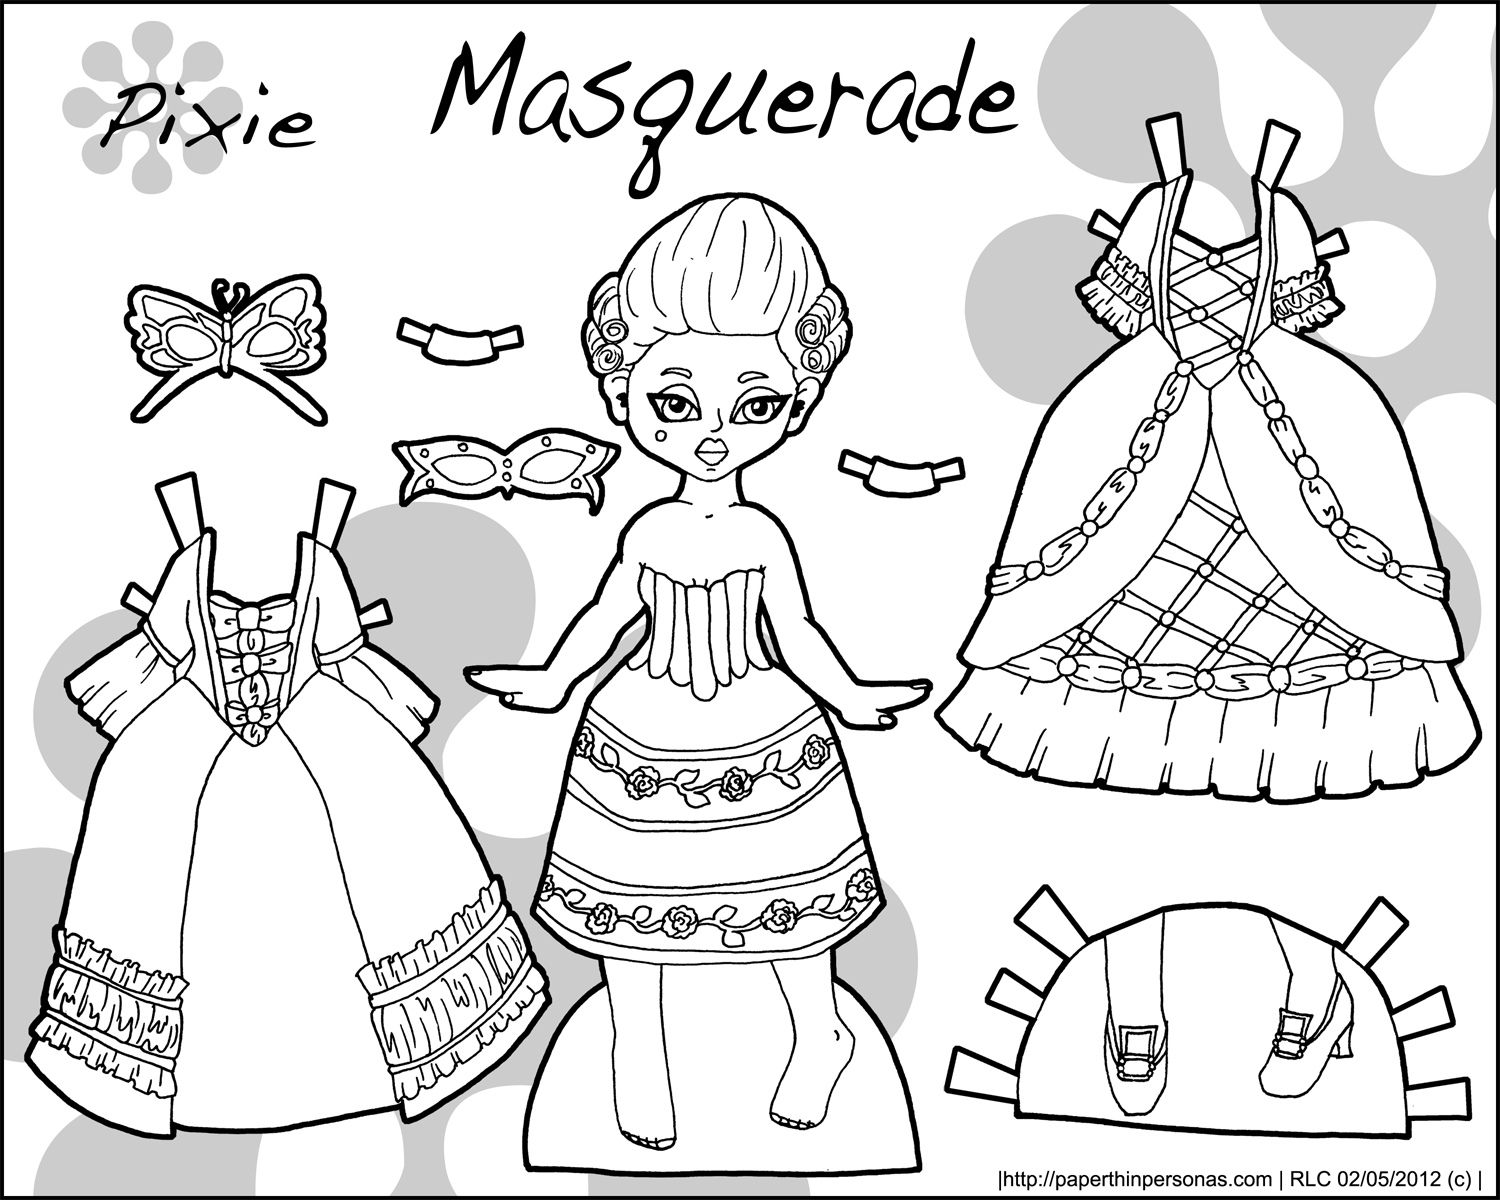 Victoria coloring dresses victorian clothes colouring pages page 2 - Masquerade Pixie Black White